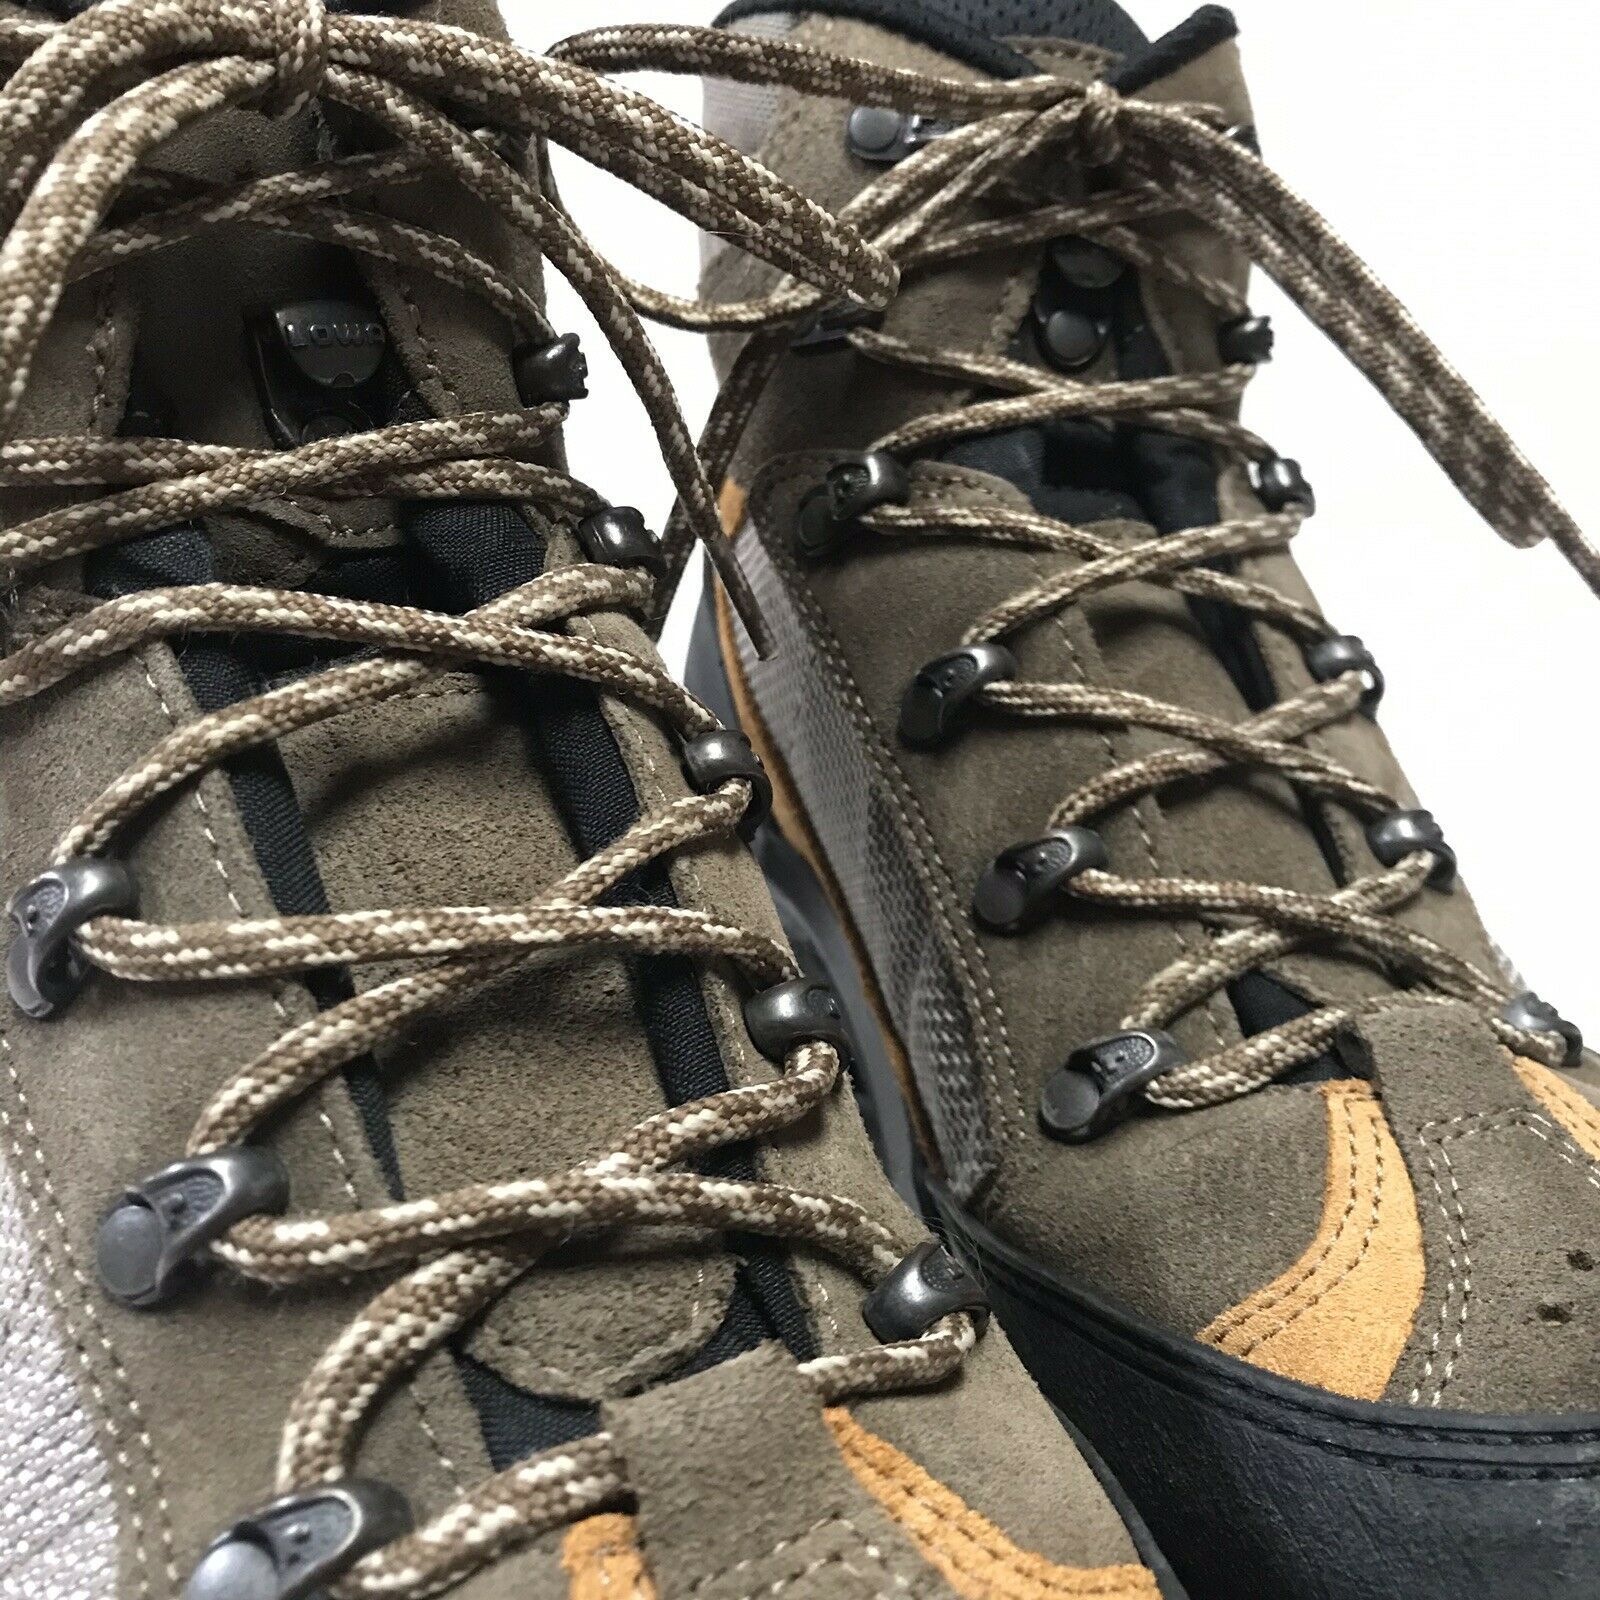 LOWA Men's Women's Mid Hiking Trail Boots Gortex   Sz 7 1 2  all products get up to 34% off